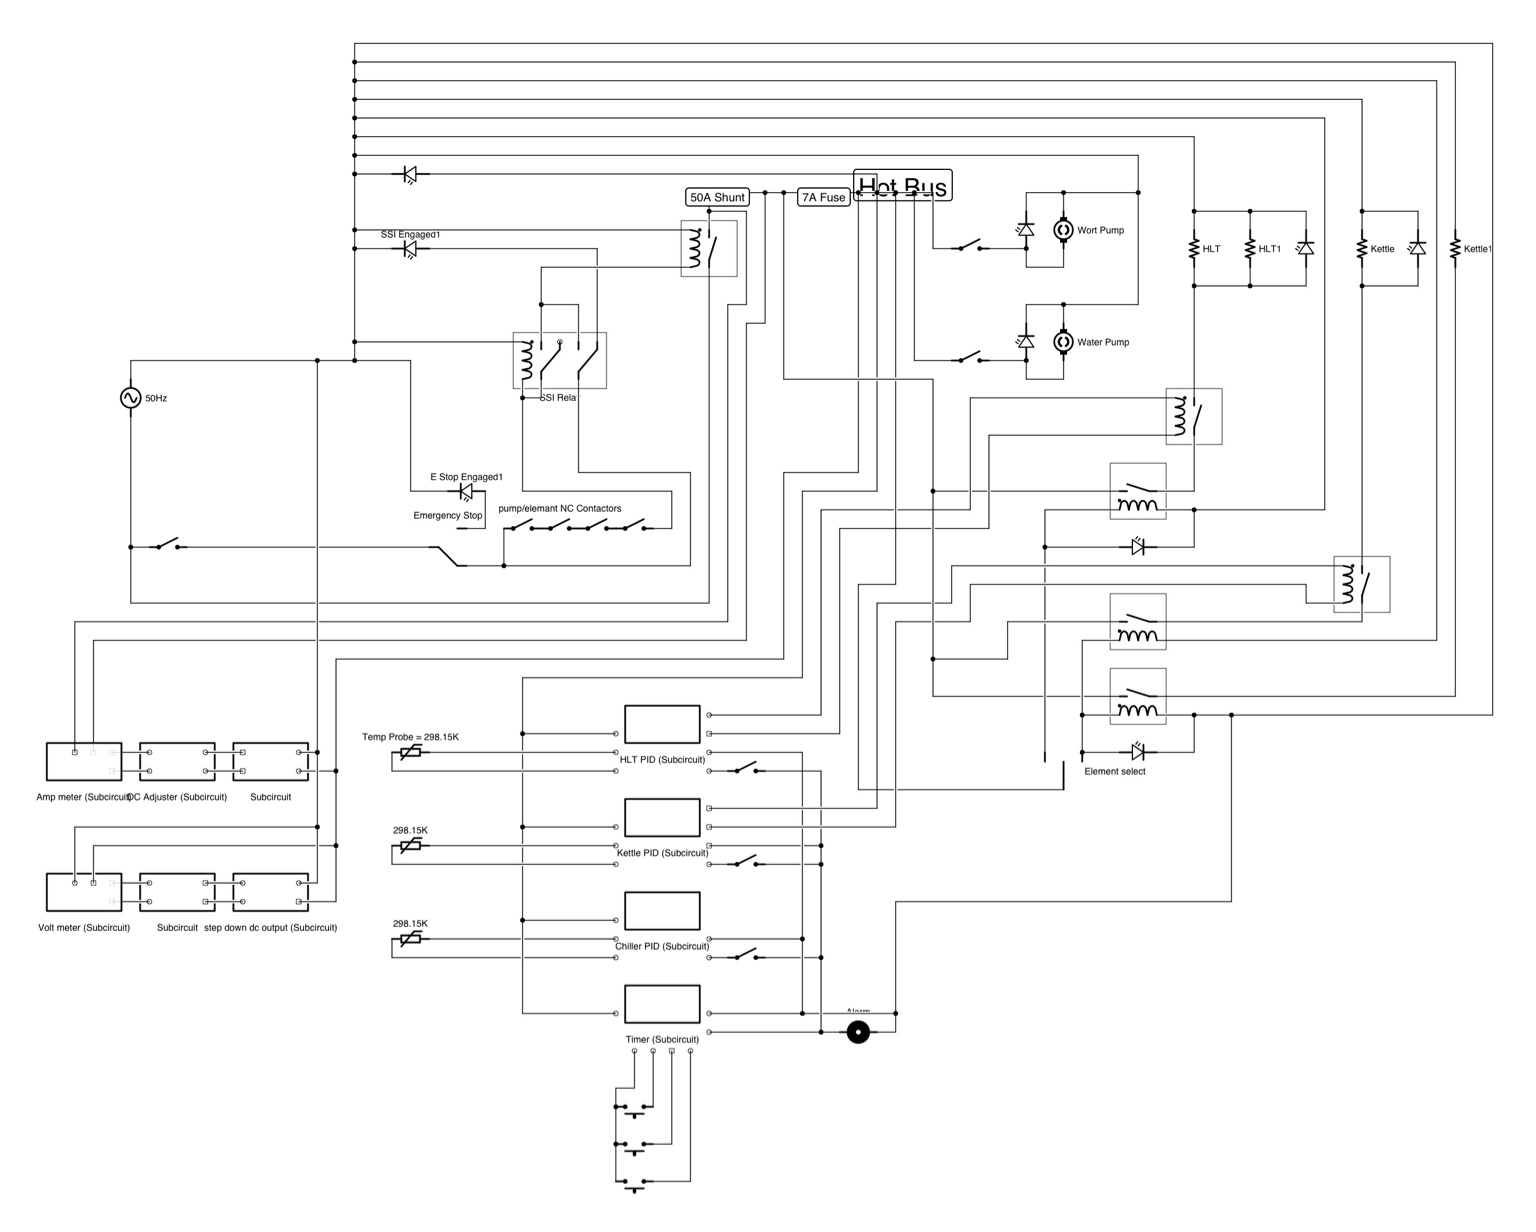 Electric brewery control panel wiring diagram for Brewery layout software